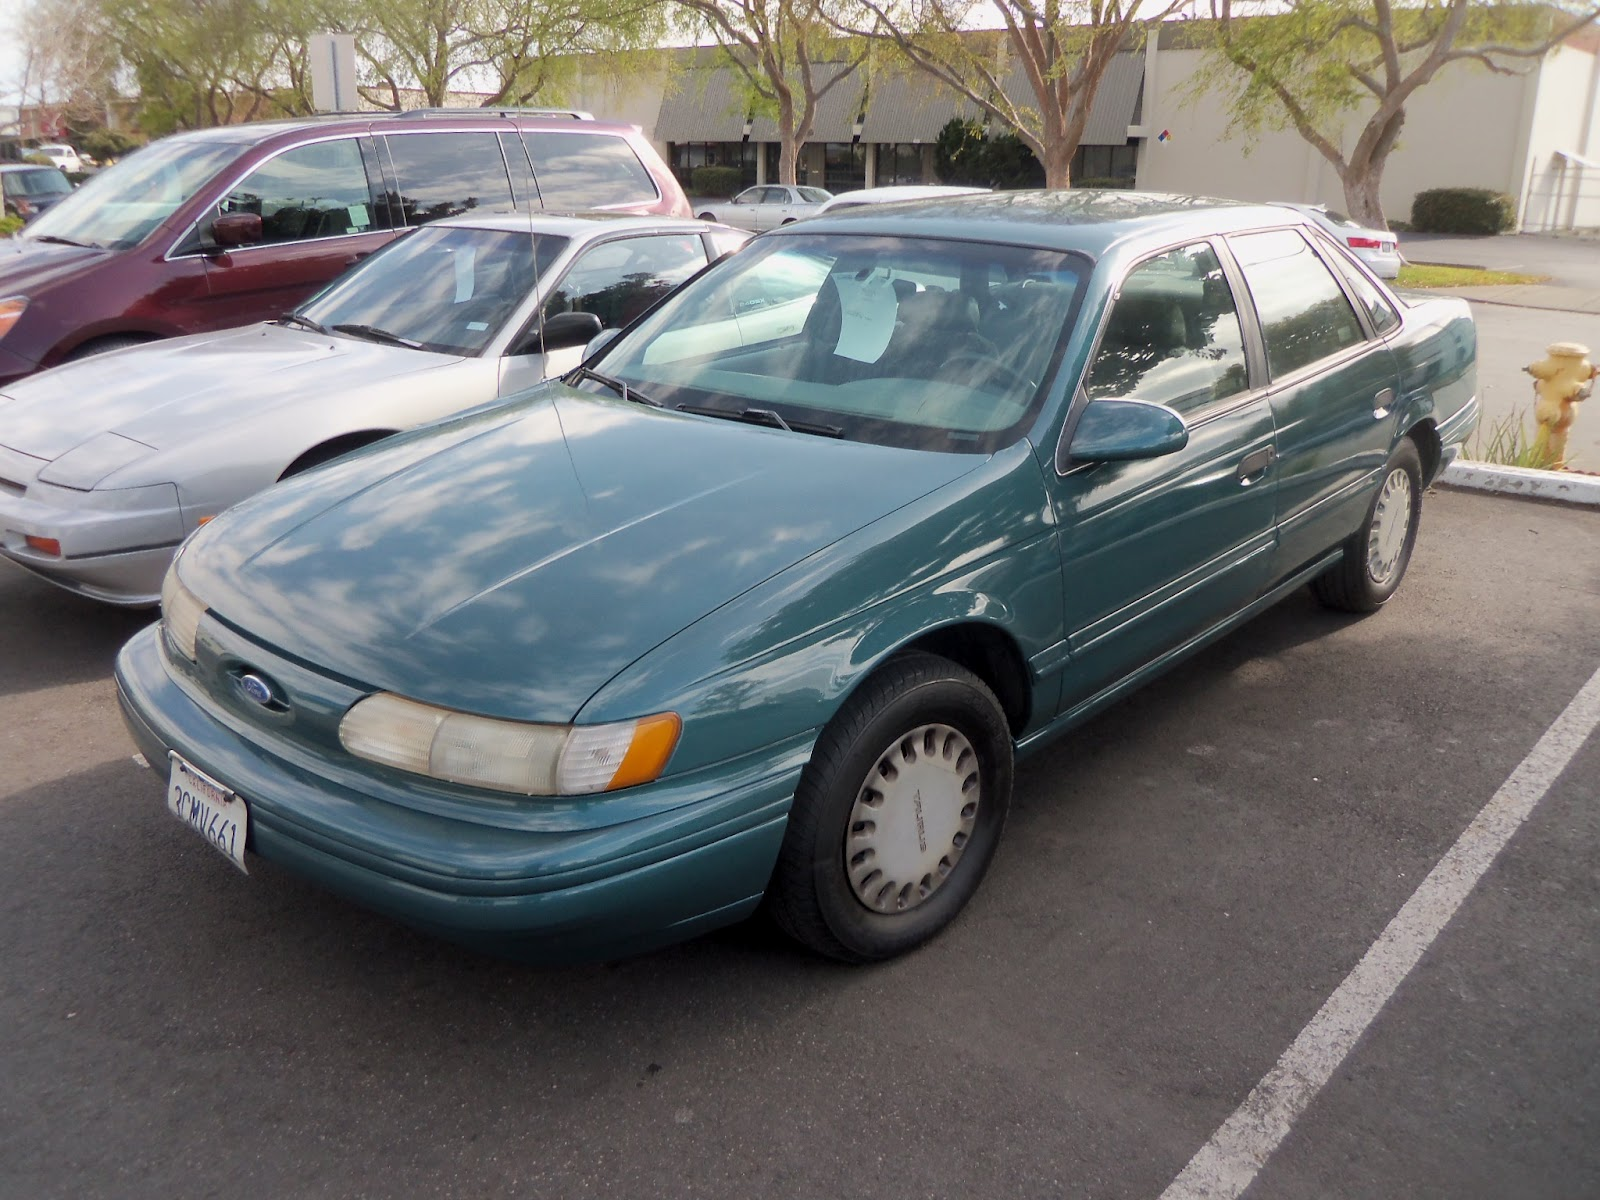 Ford Taurus 1993 photo - 3